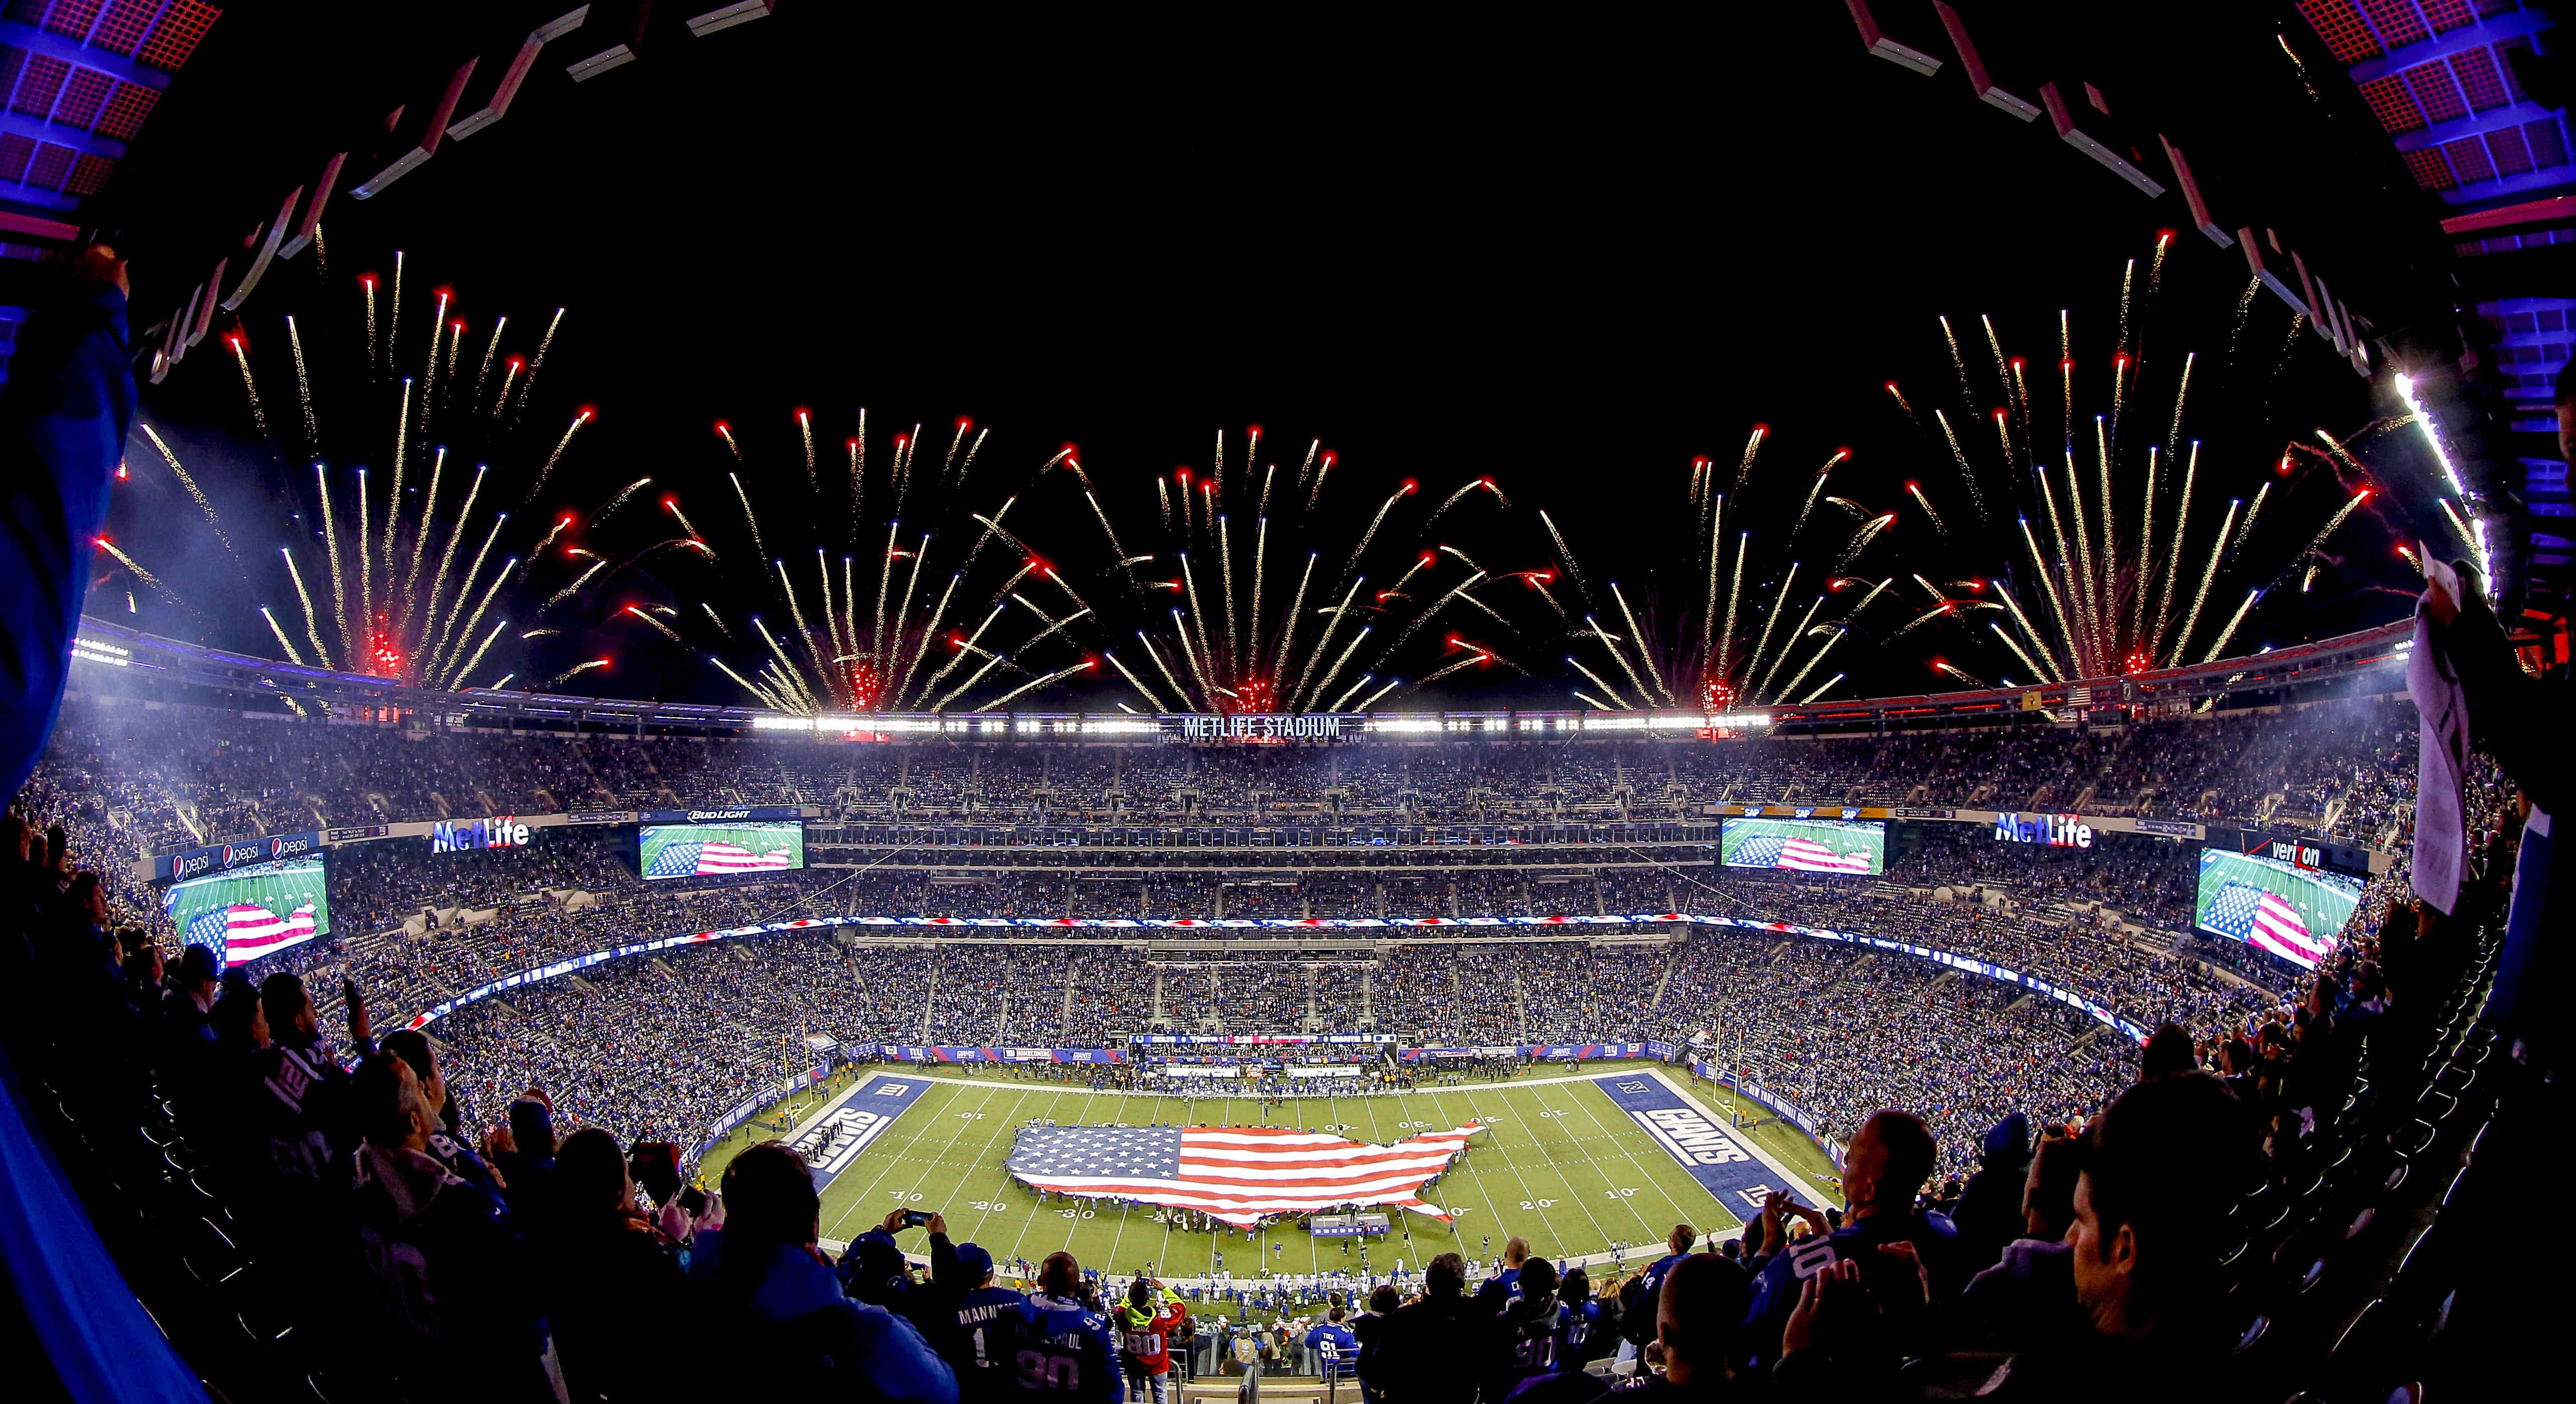 NFL: Indianapolis Colts at New York Giants